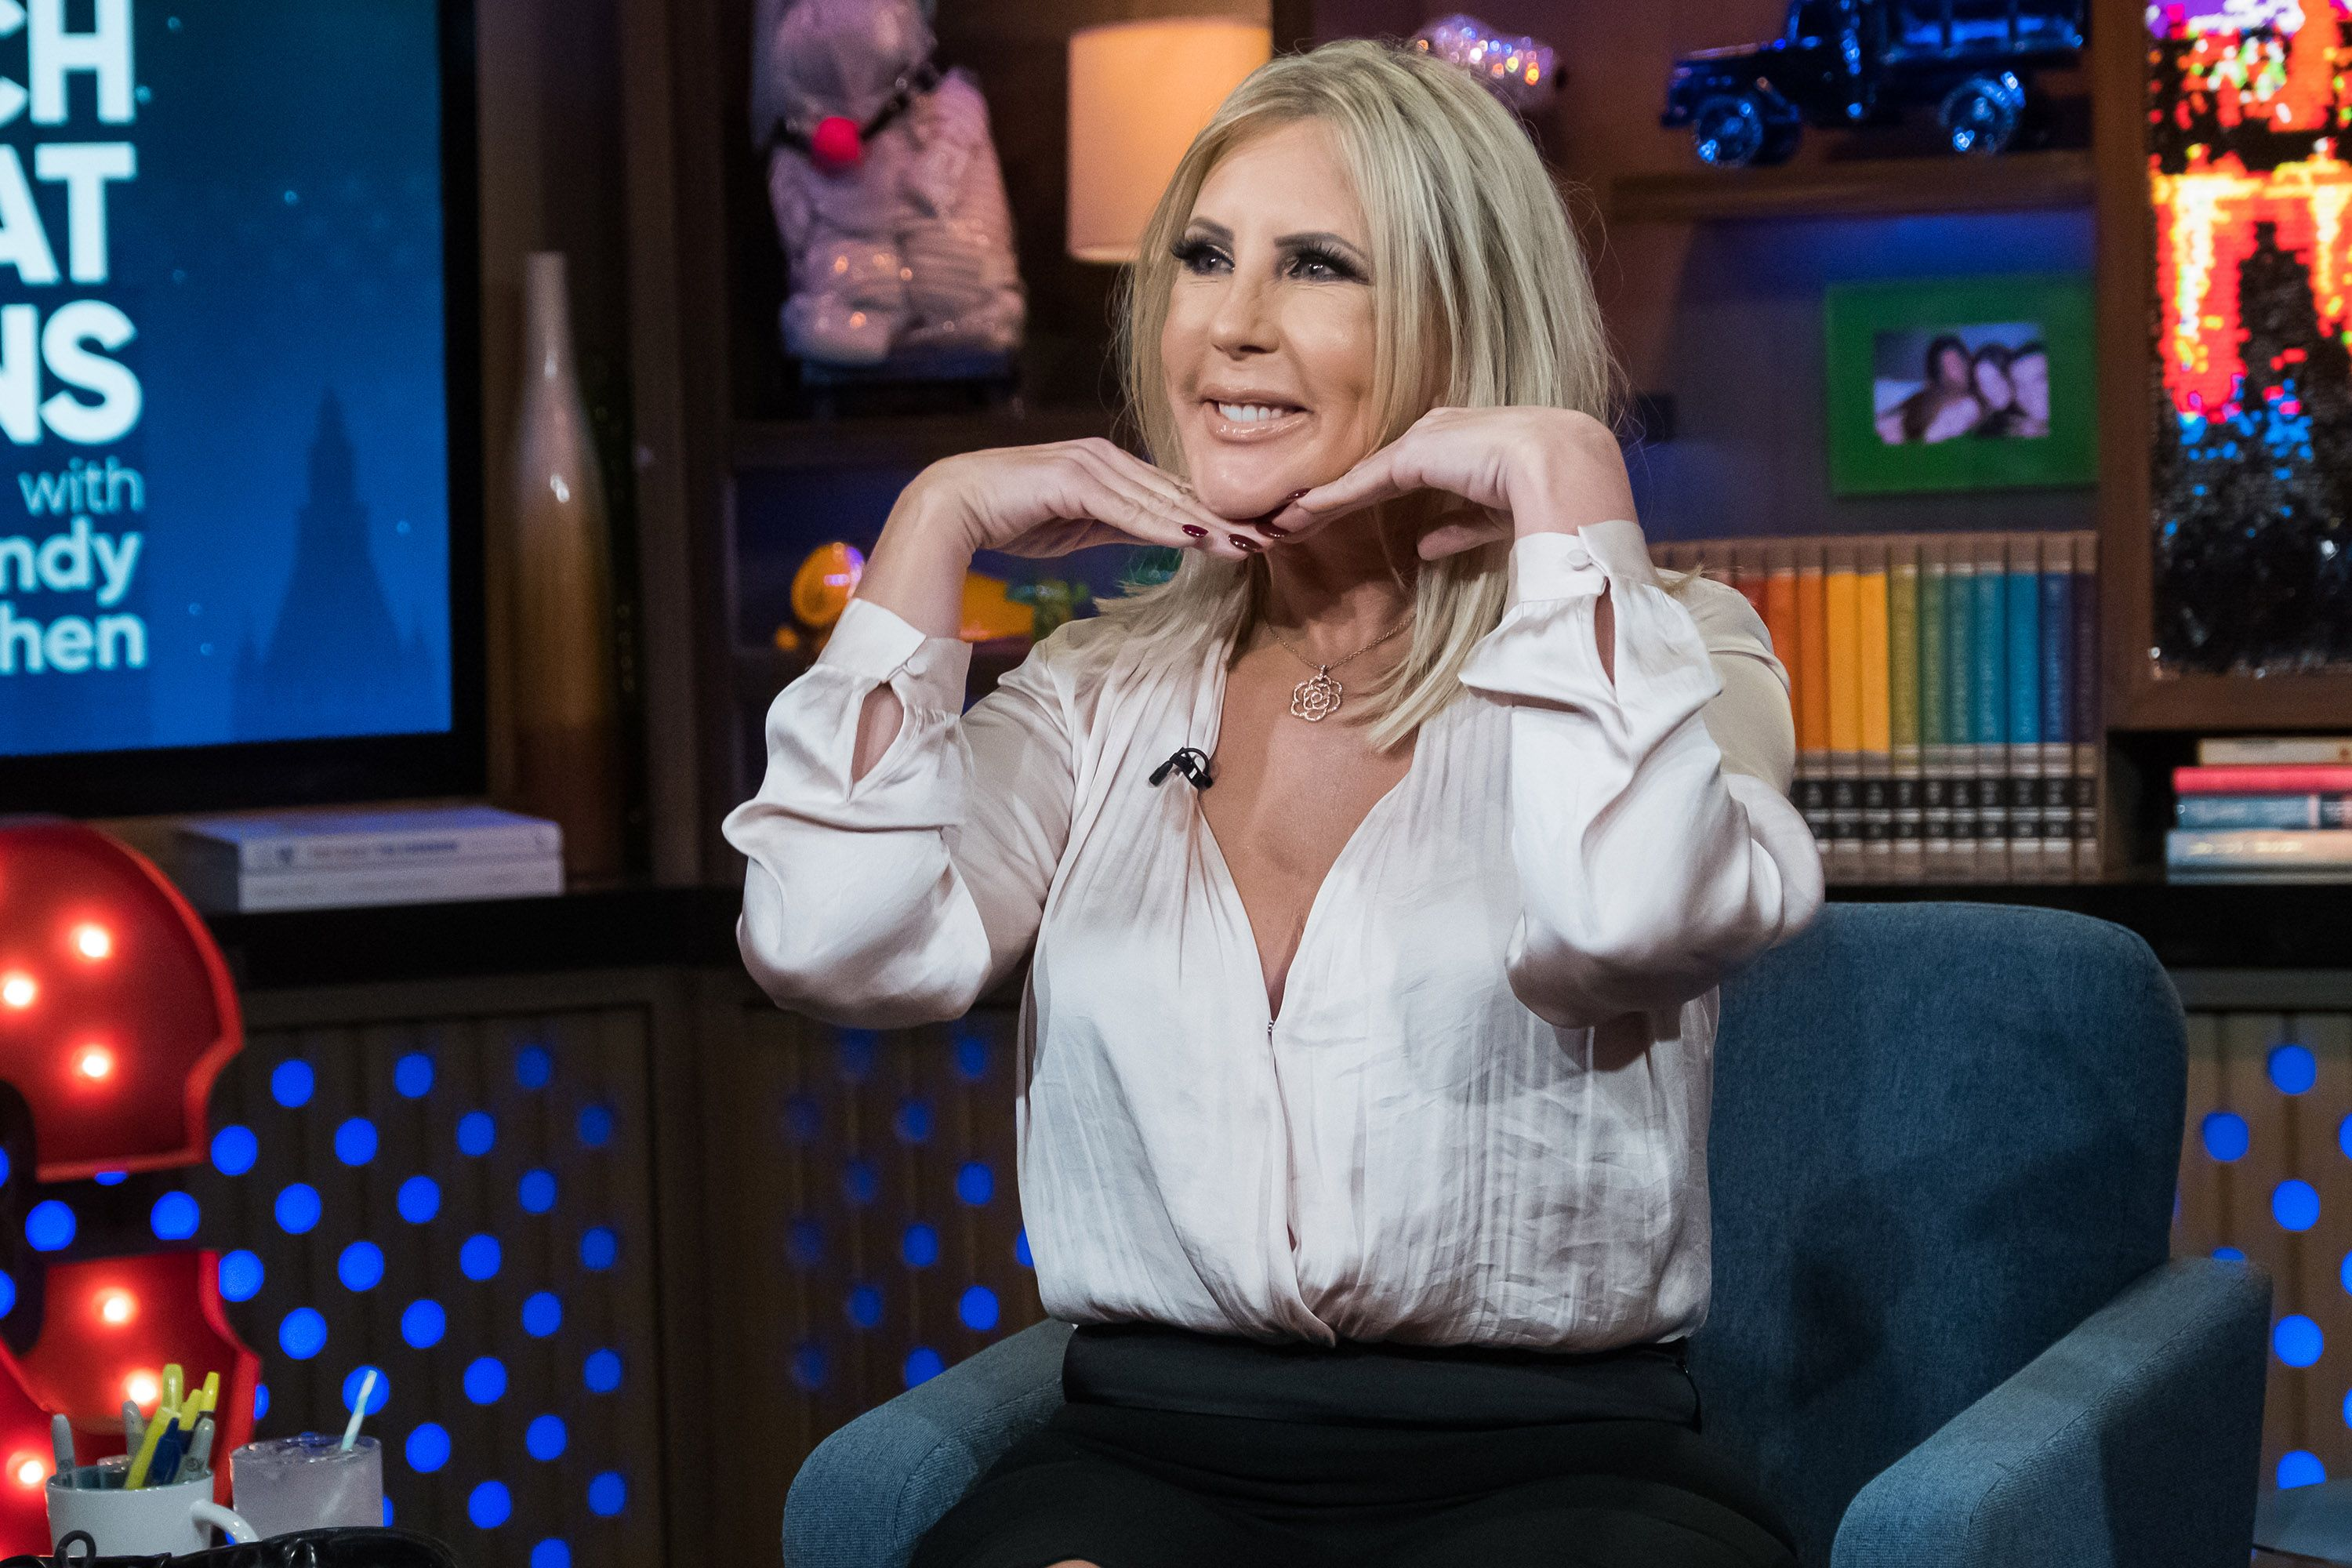 vicki gunvalson on Watch What Happens Live with Andy Cohen